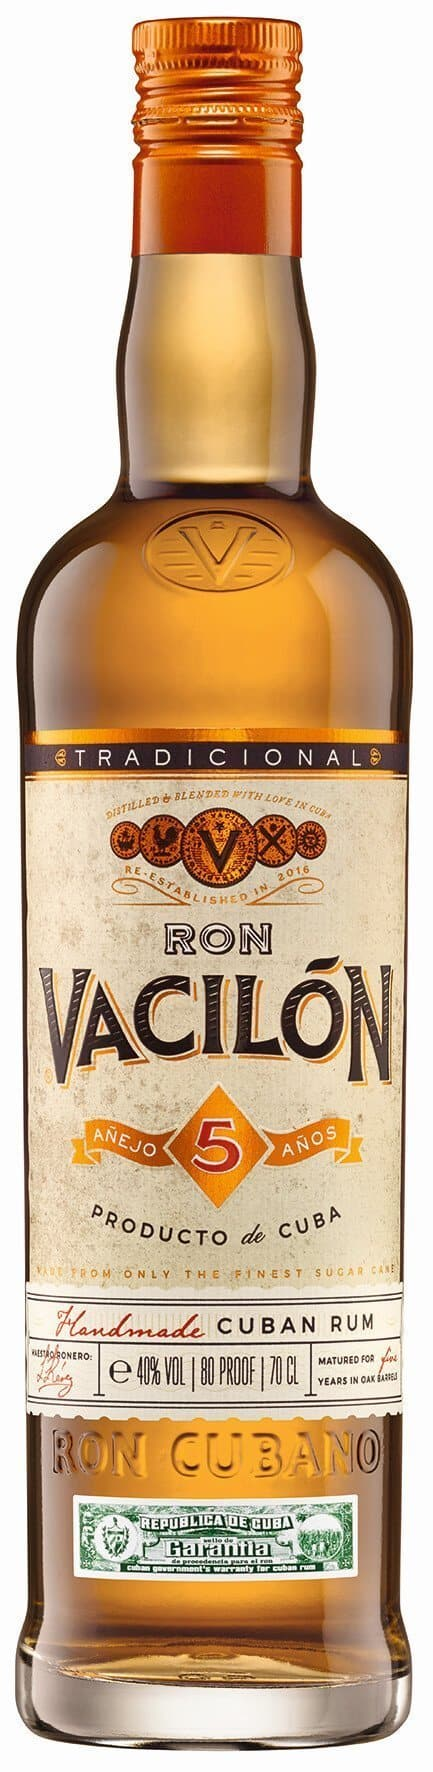 Ron Vacilon 5 Y.O.